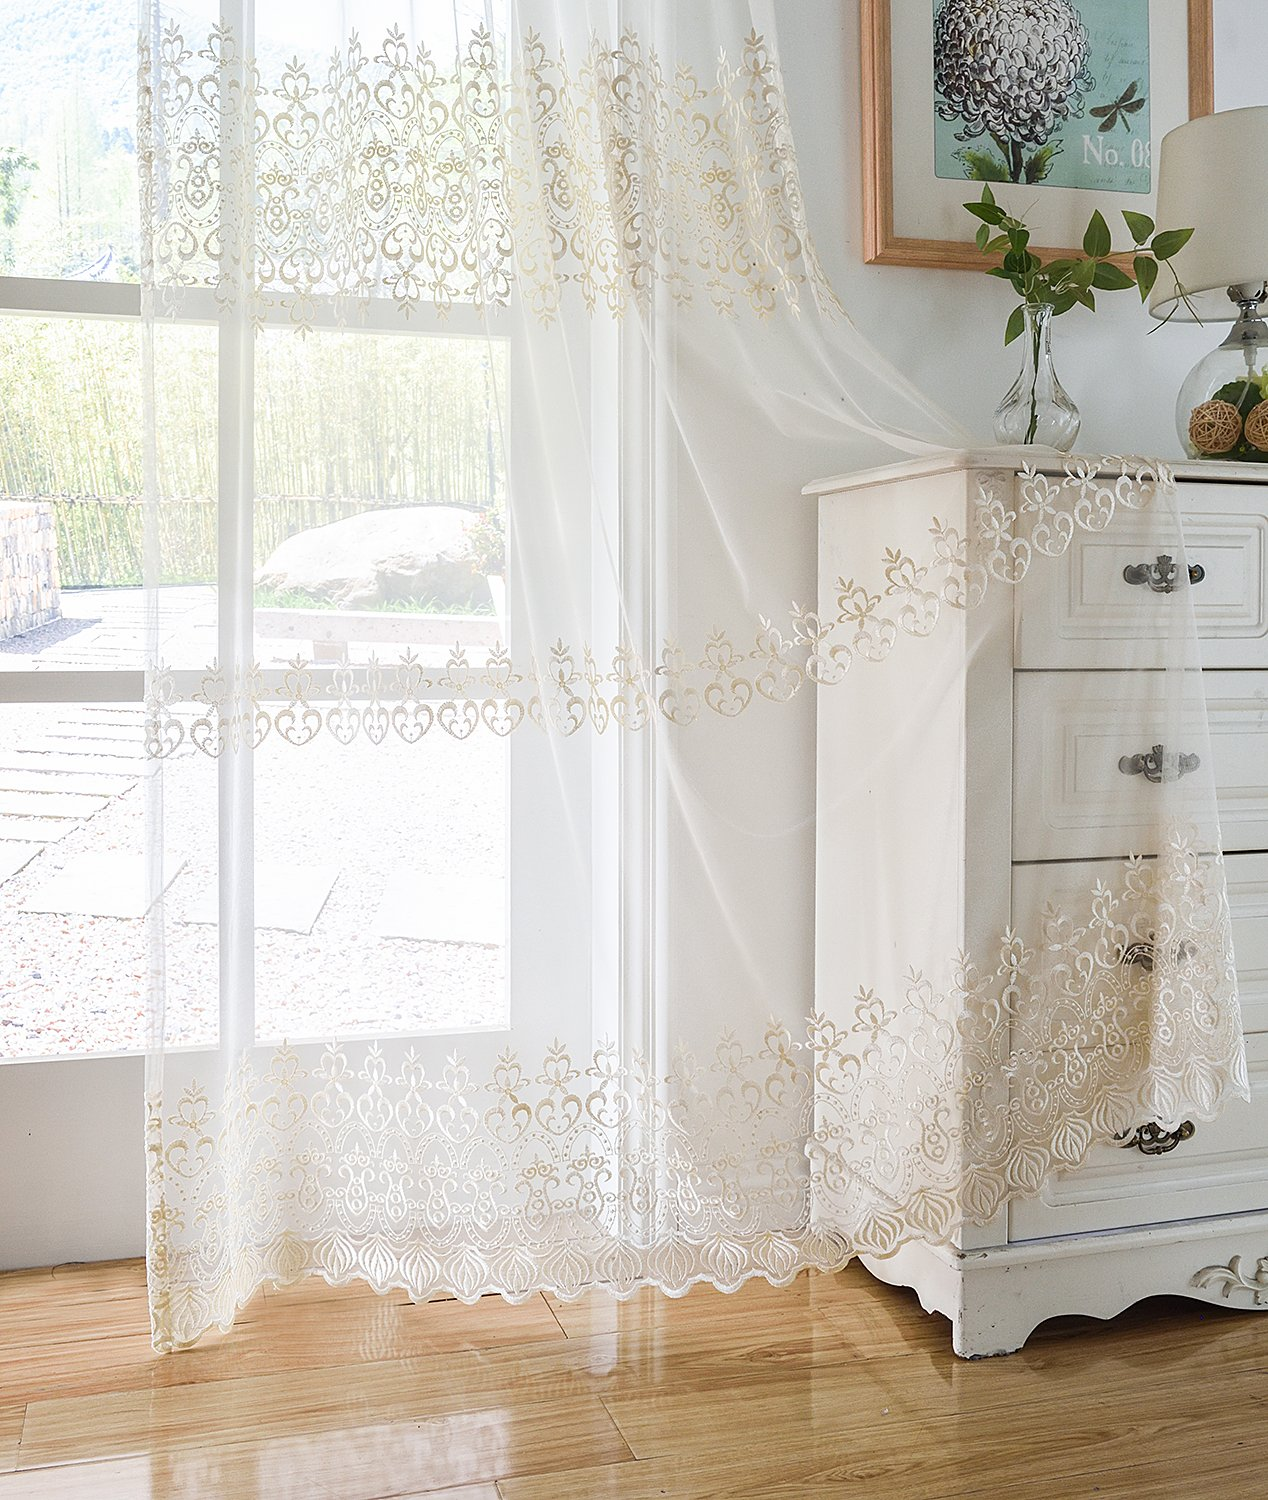 Aside Bside Sheer Curtains Tiny Arrow Embroidered Pattern Relaxed Casual Style Rod Pocket Top For Windows (1 Panel, W 52 x L 63 inch, White 11) -128150752638510C1PGC